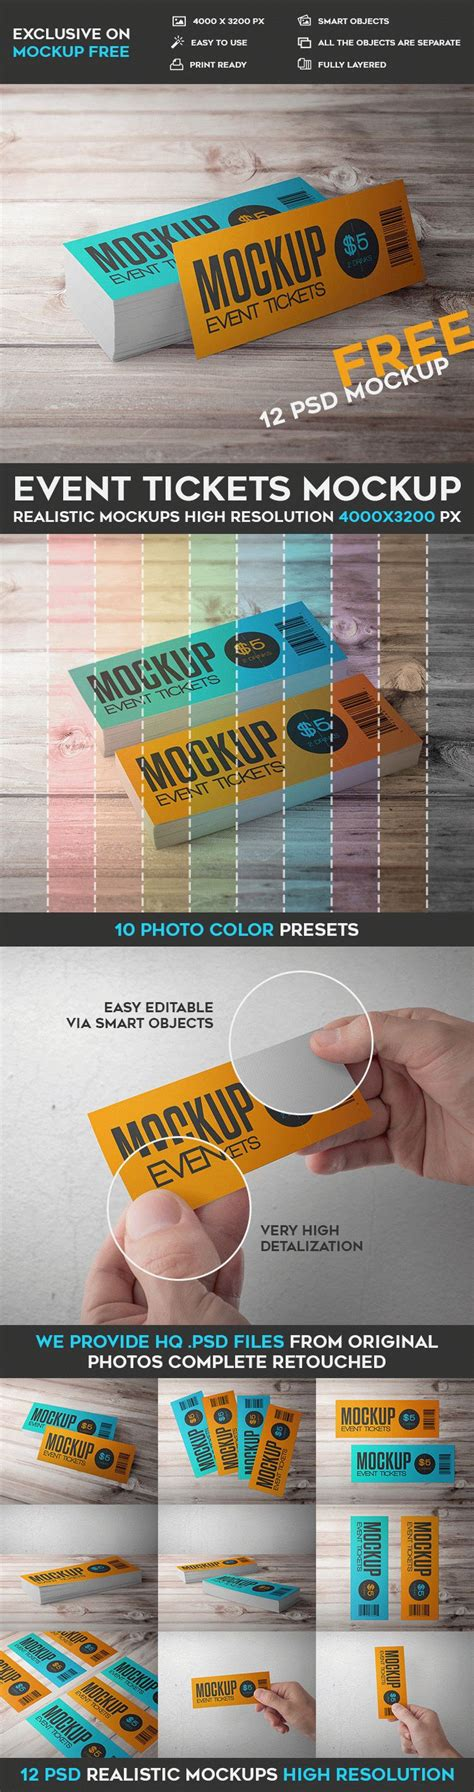 Event Tickets 12 Free Psd Mockups Free Psd Templates Event Ticket Template Psd Free